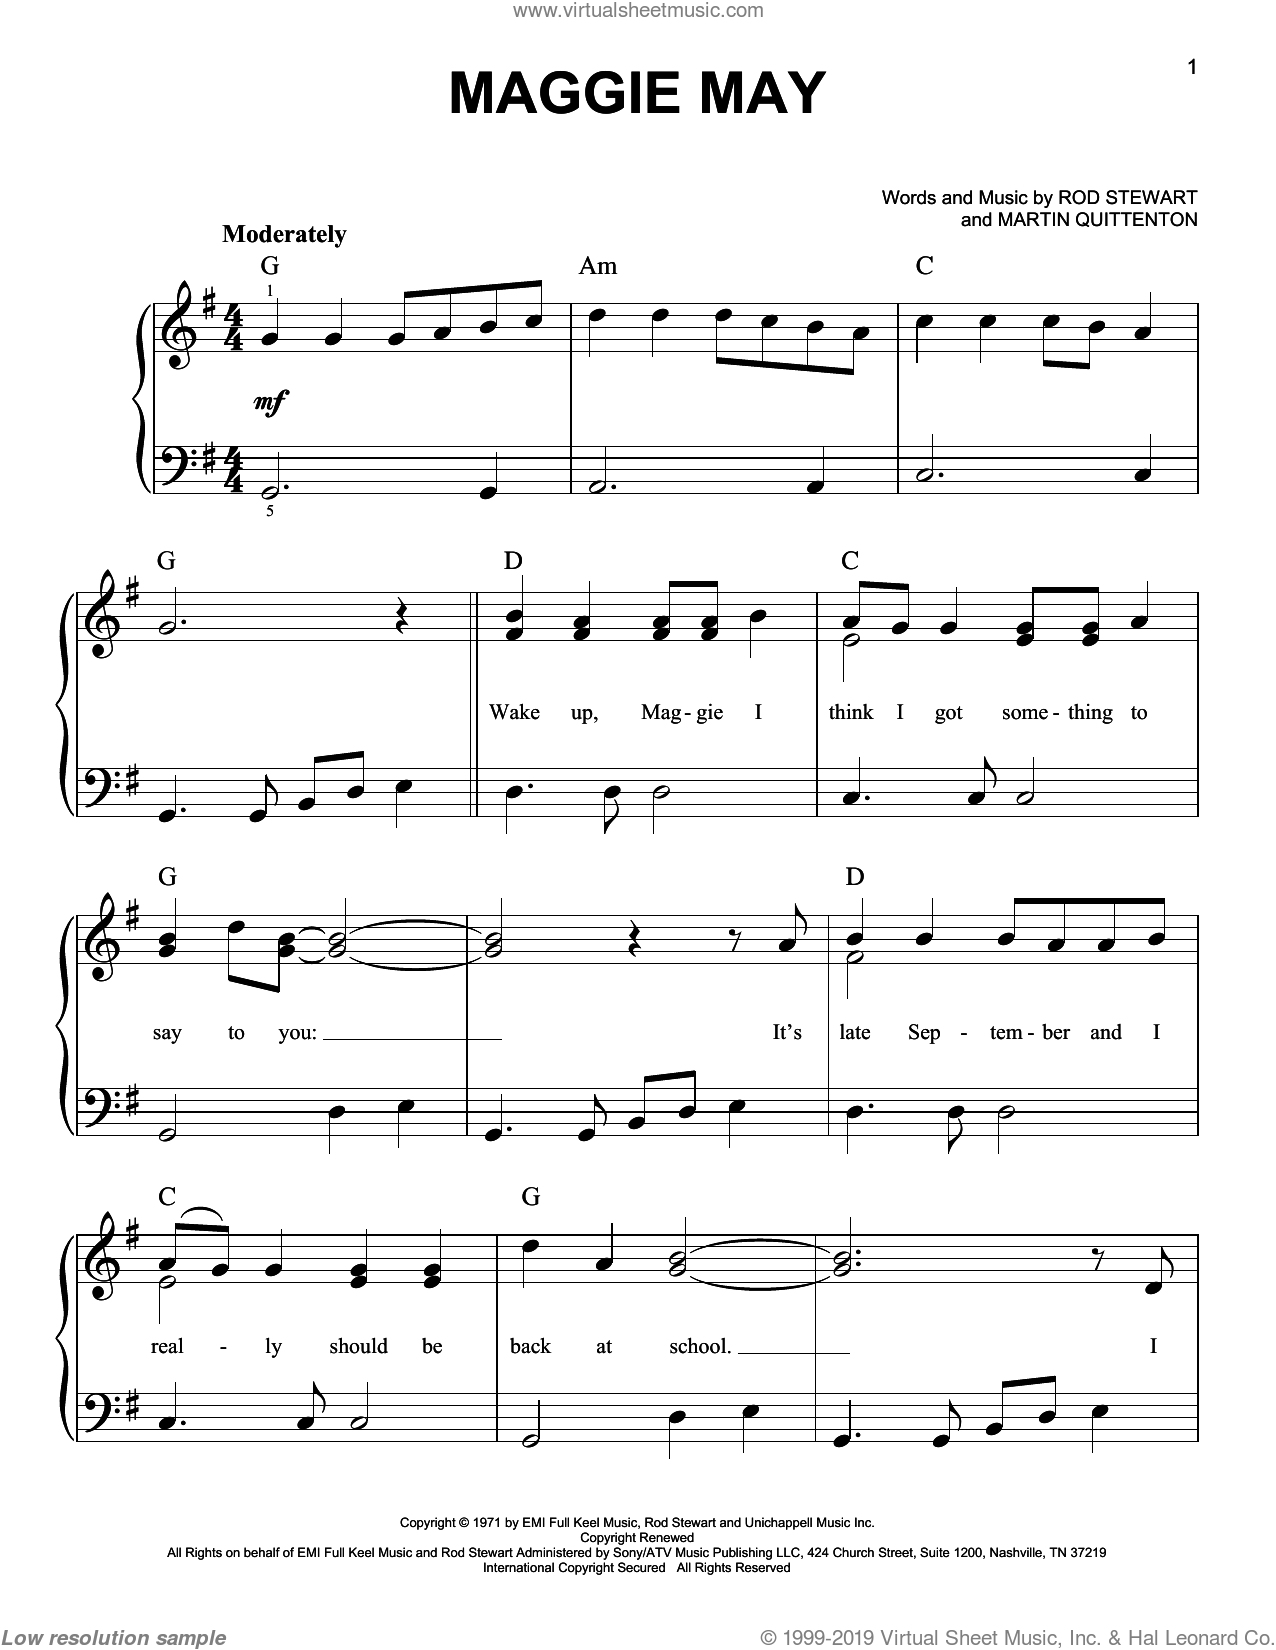 Maggie May sheet music for piano solo by Martin Quittenton and Rod Stewart. Score Image Preview.